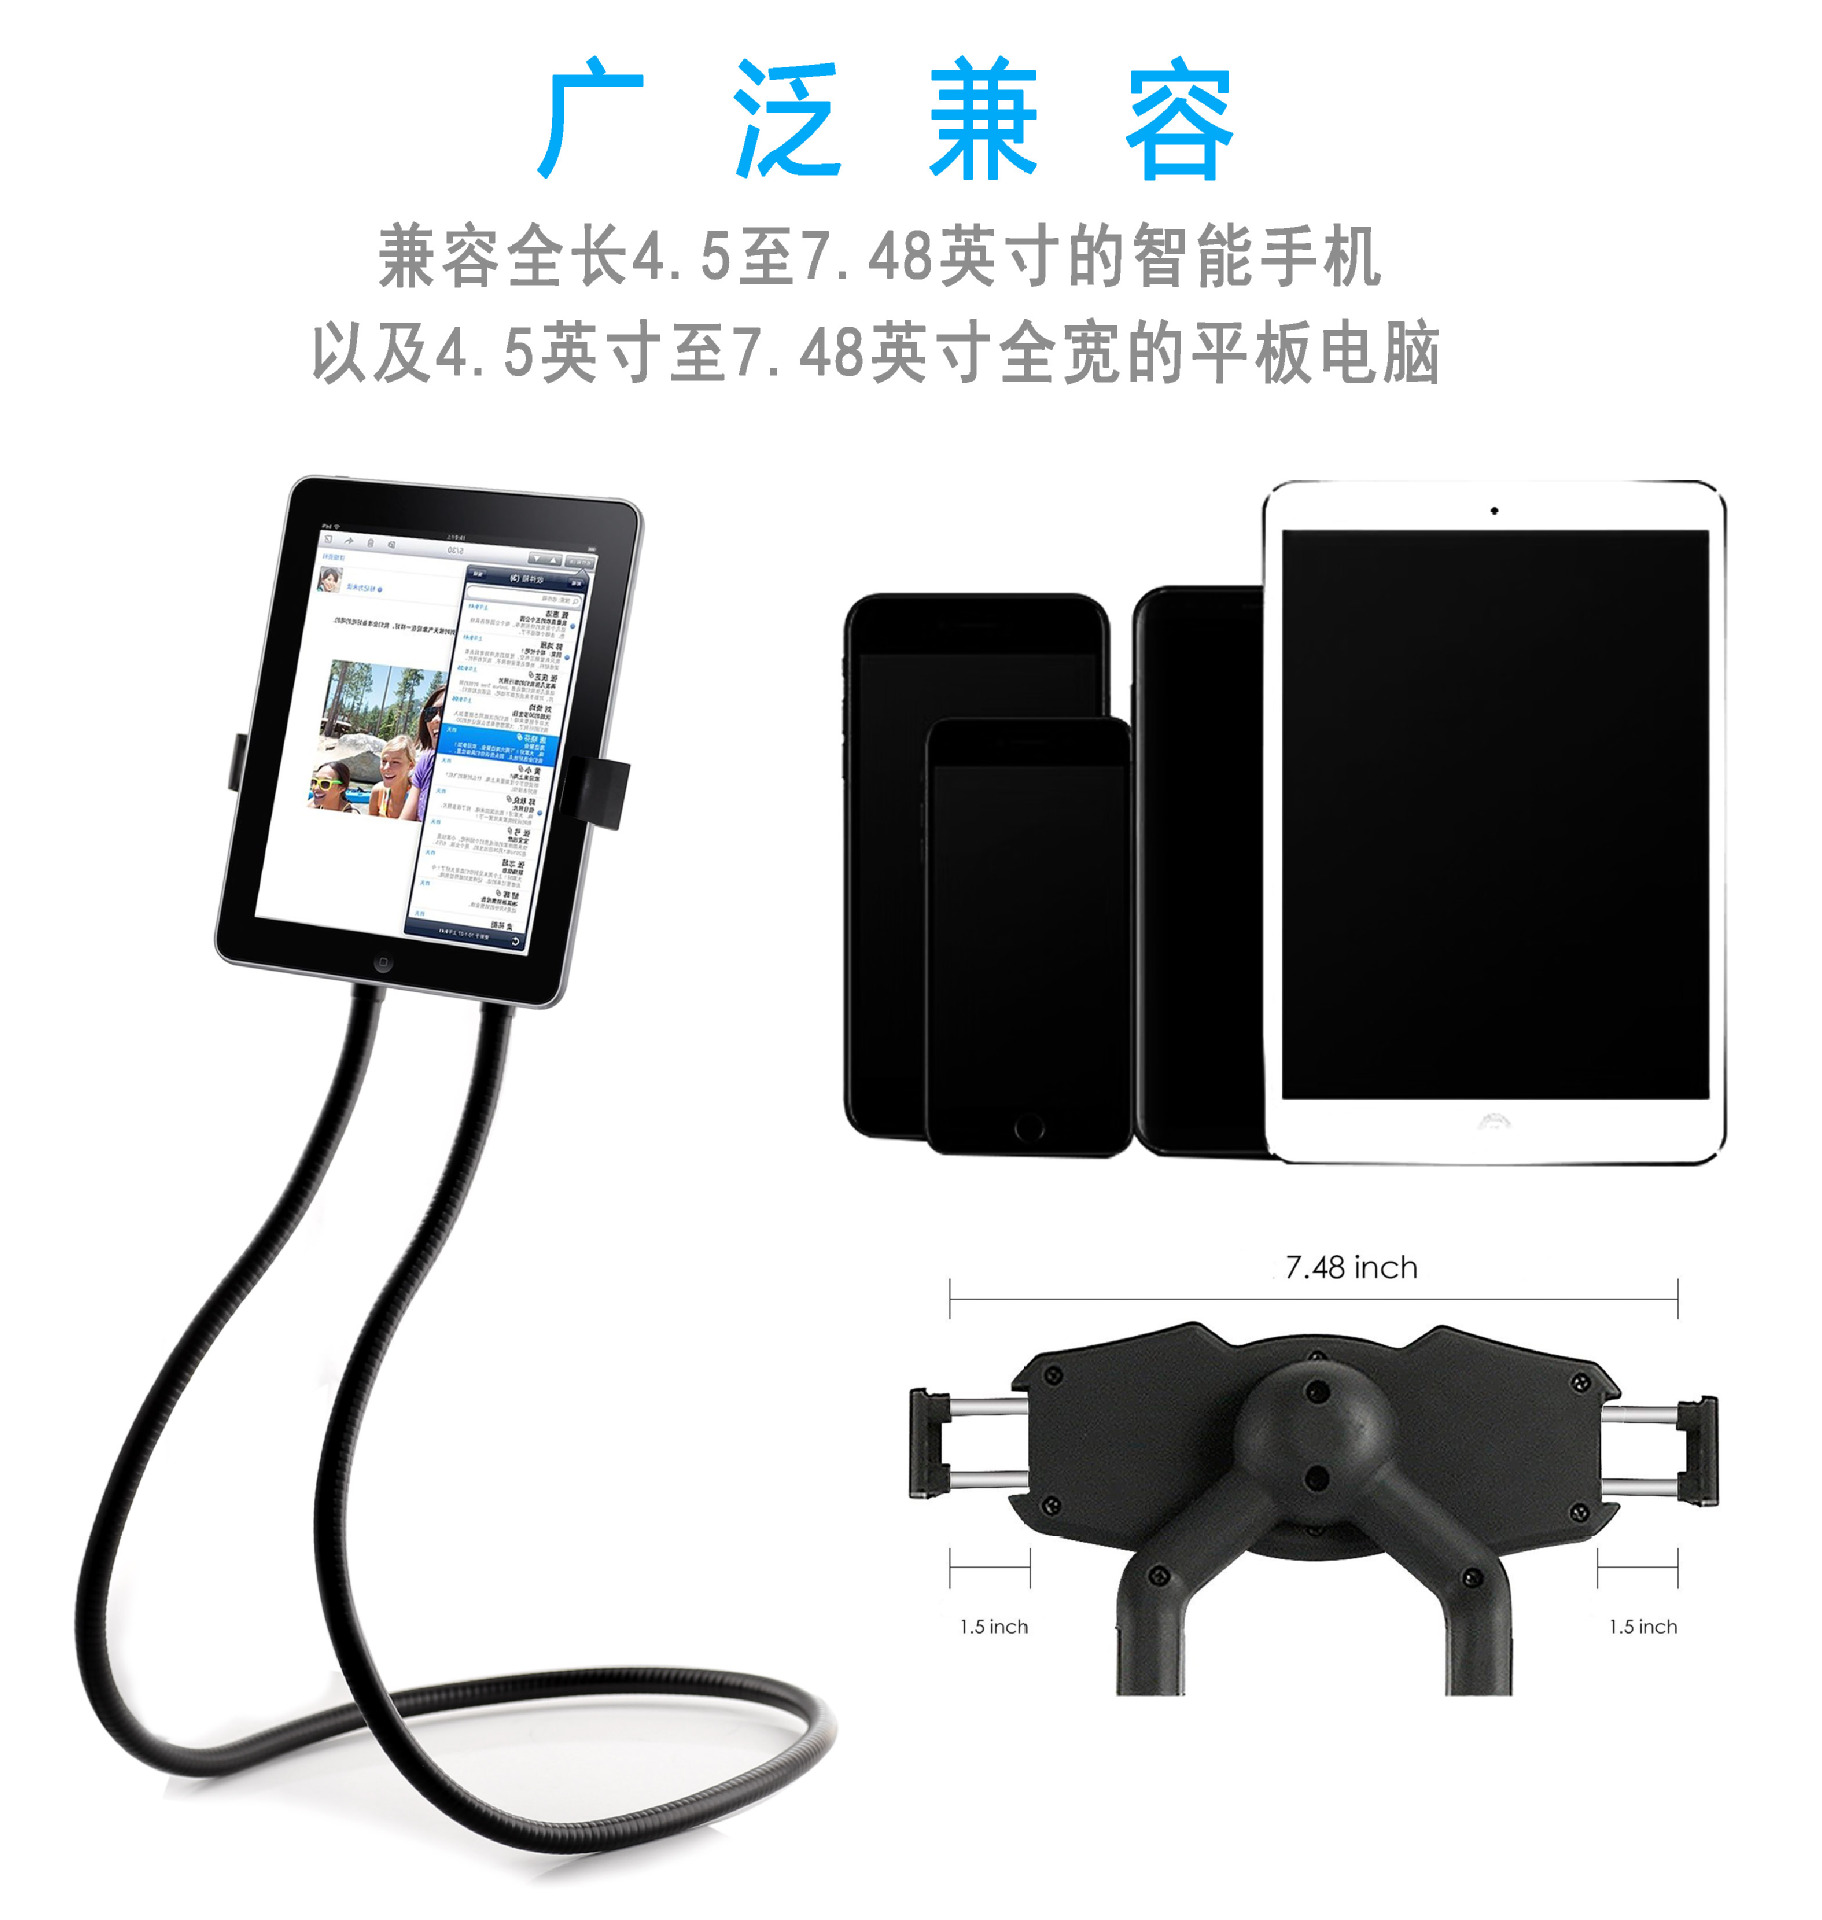 Upgraded Mobile Phone Stand Lazy Neck Bracket DIY Free Rotating for Multiple Functions